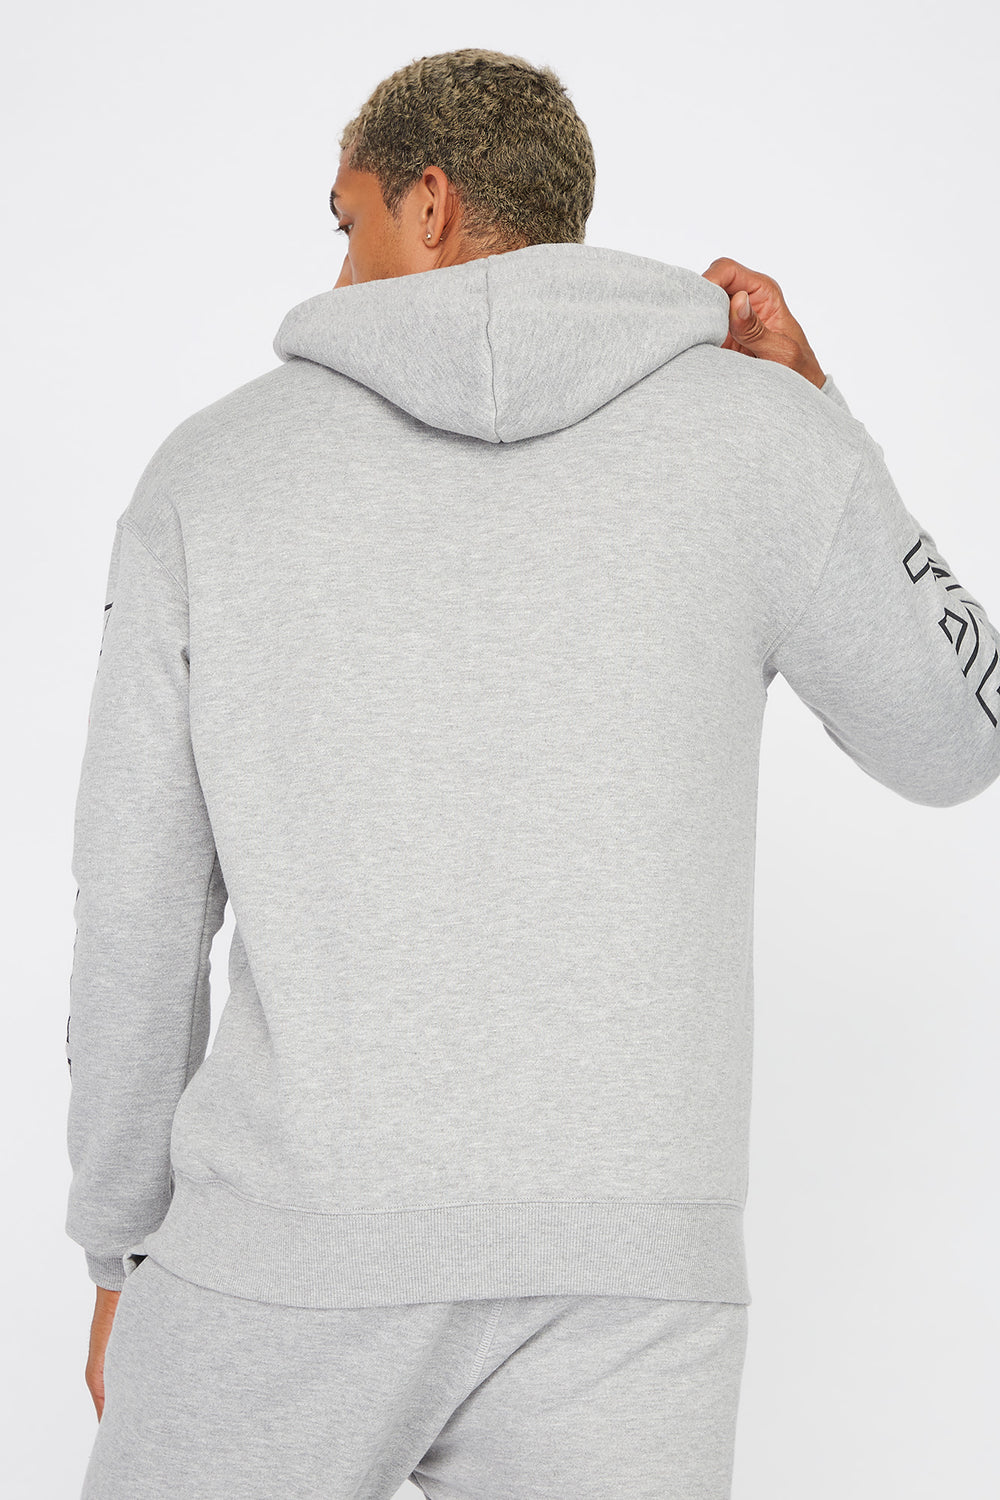 Toronto Champions Graphic Popover Hoodie Heather Grey